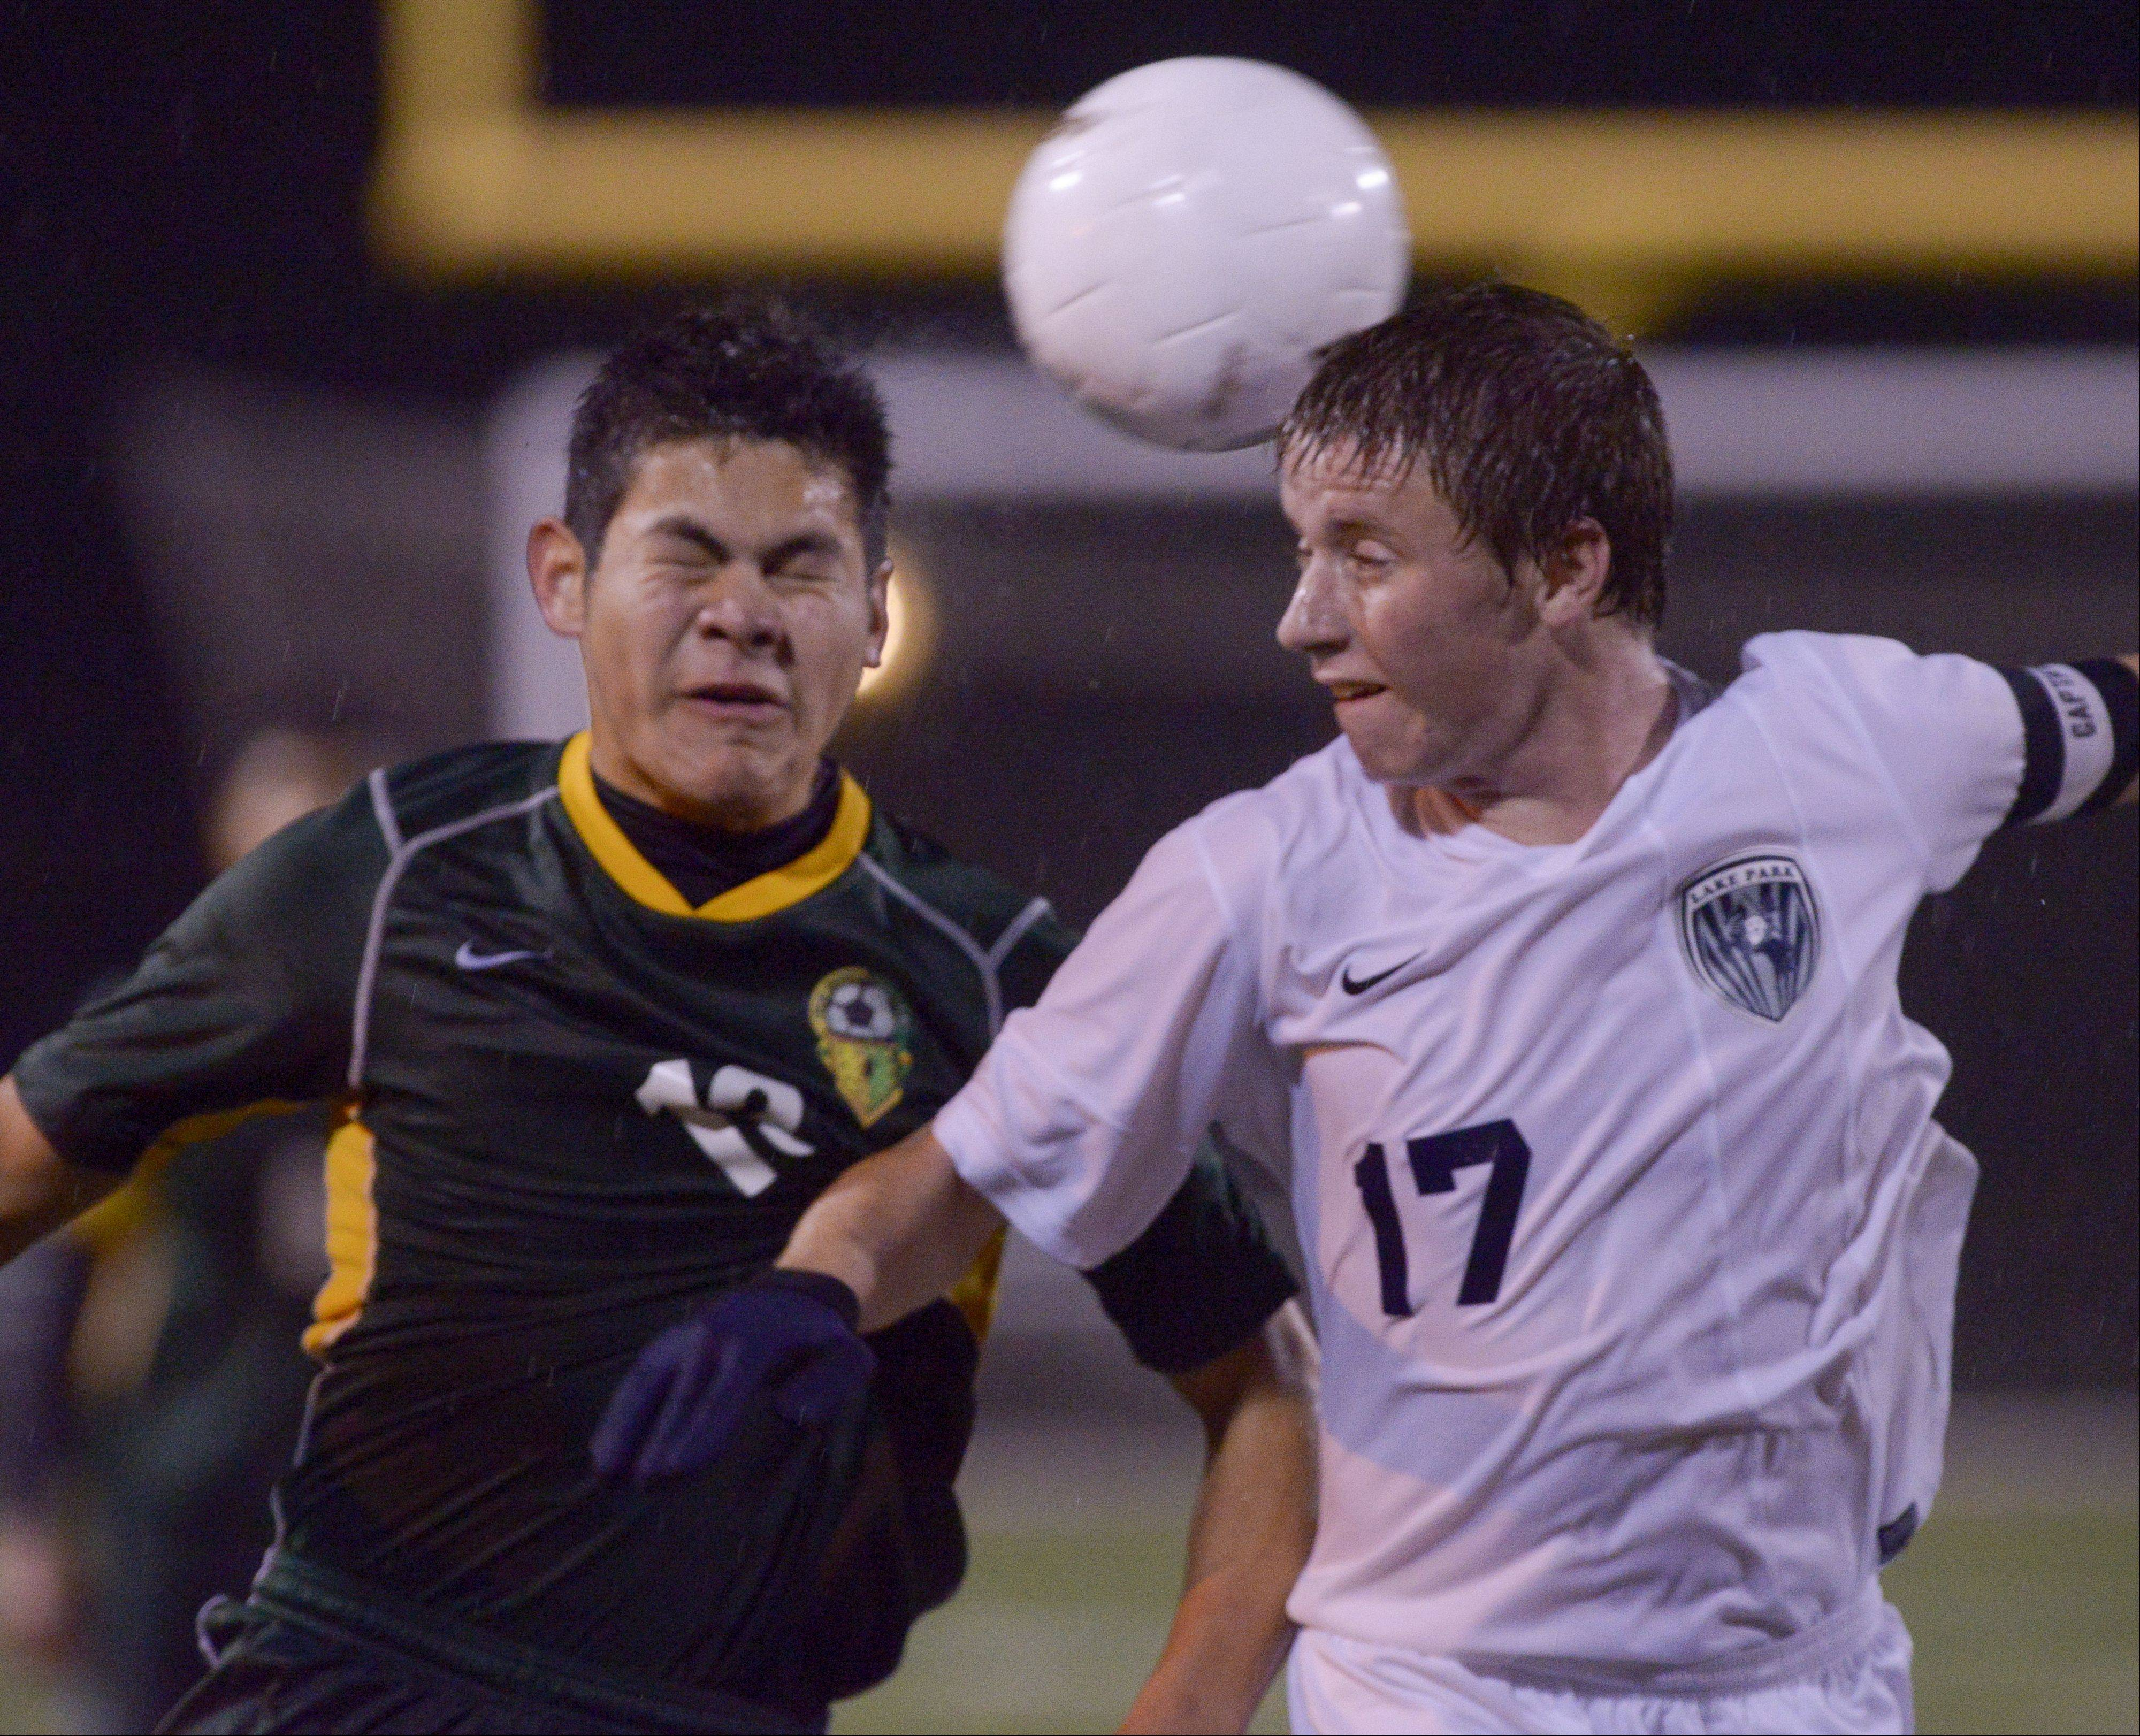 Elk Grove's Arnold Aguilar and Lake Park's Joe Keane battle for the ball during Wednesday's Class 3A Schaumburg sectional soccer semifinals.